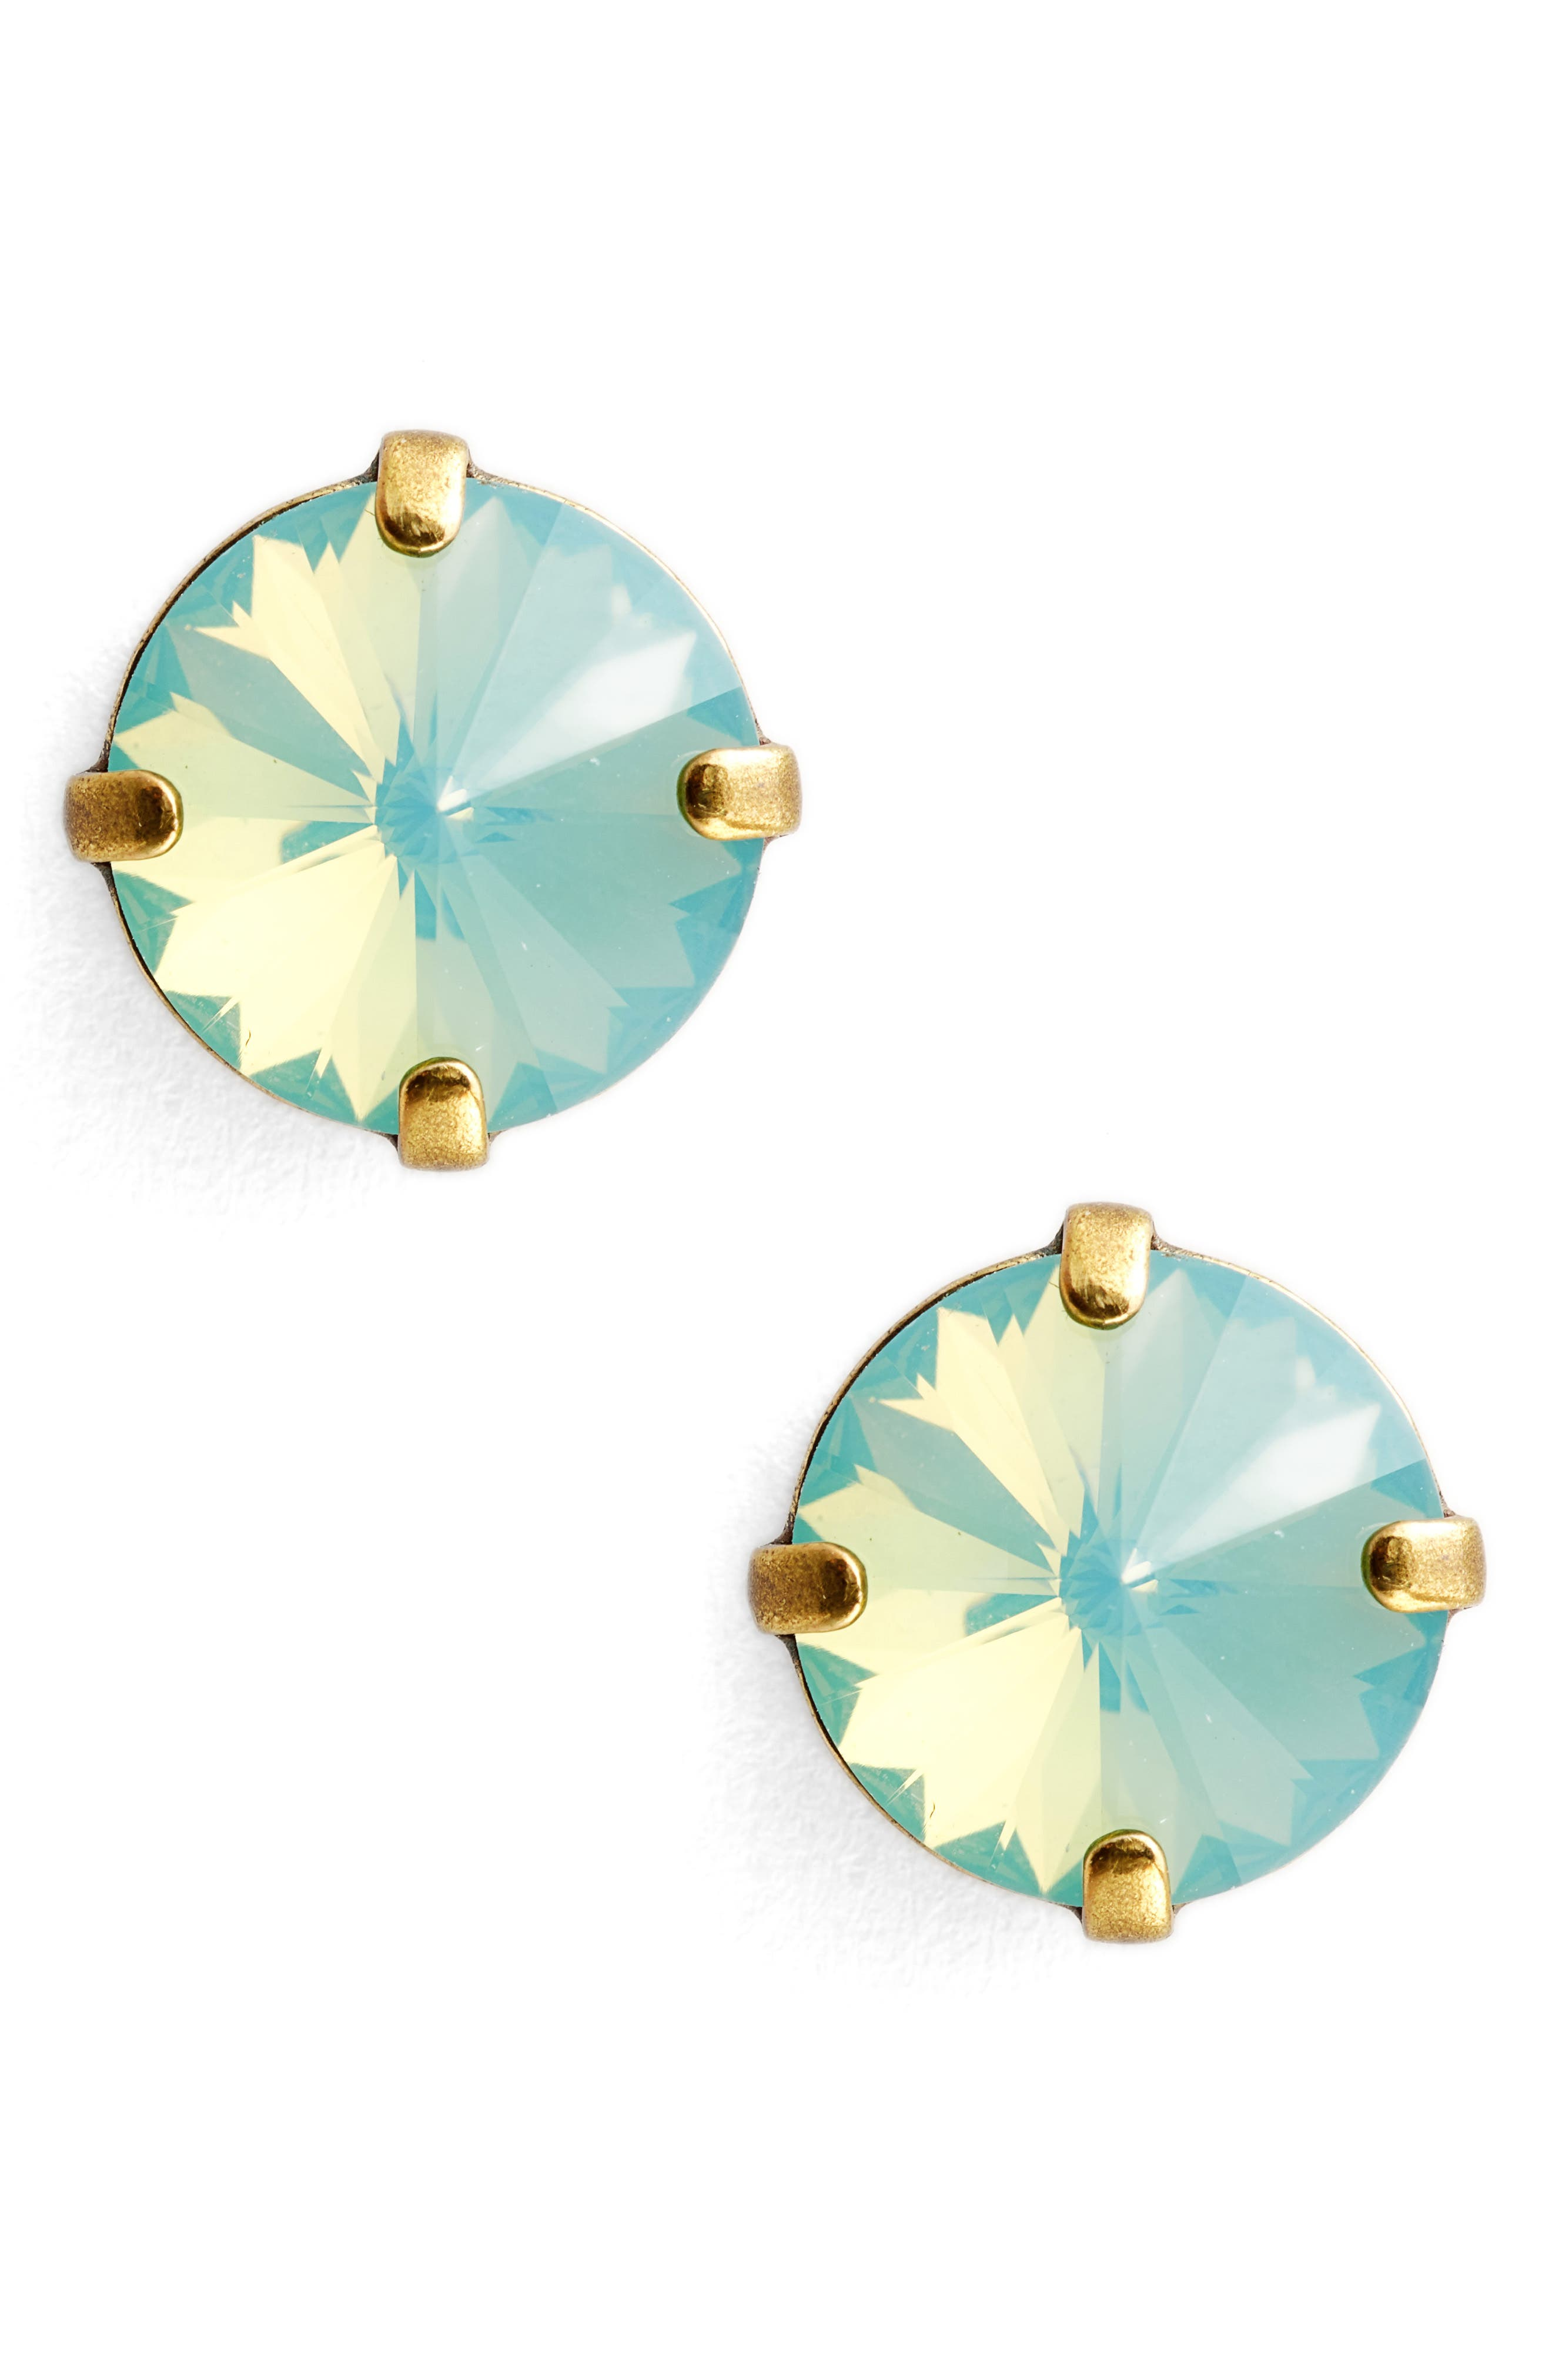 Radiant Rivoli Crystal Earrings,                             Main thumbnail 1, color,                             BLUE-GREEN/ GOLD